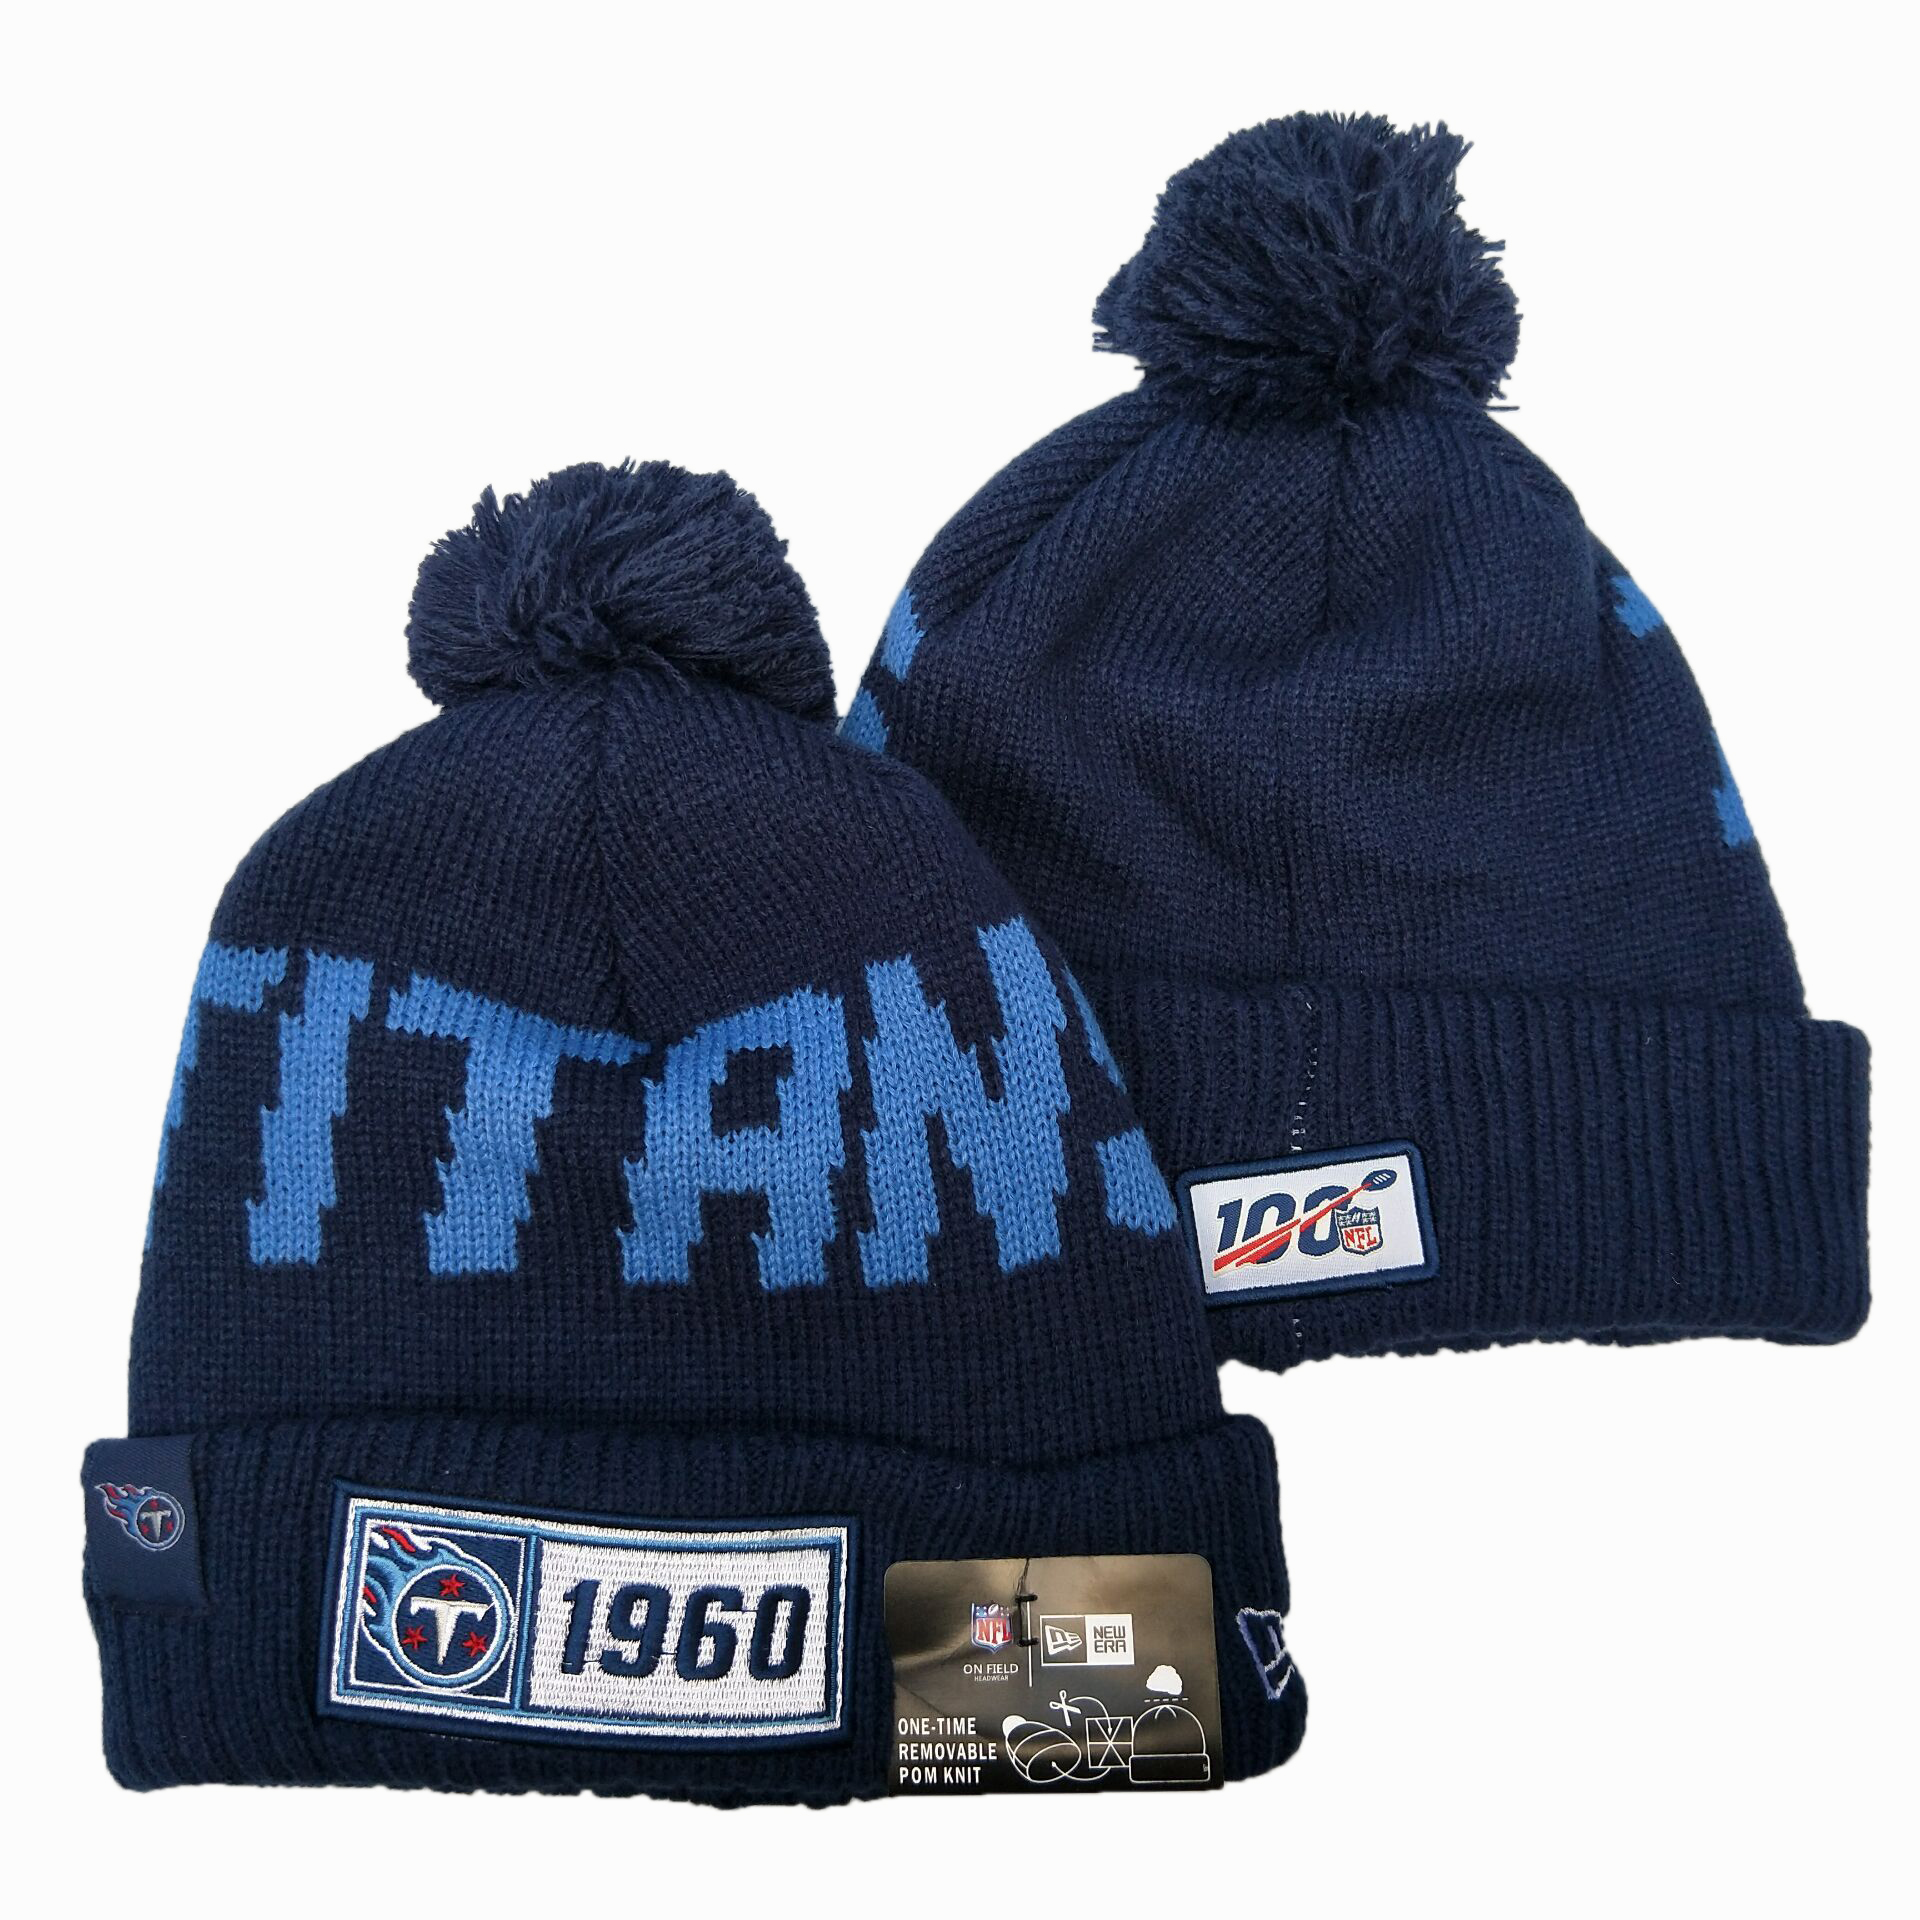 Tennessee Titans Knit Hats 024